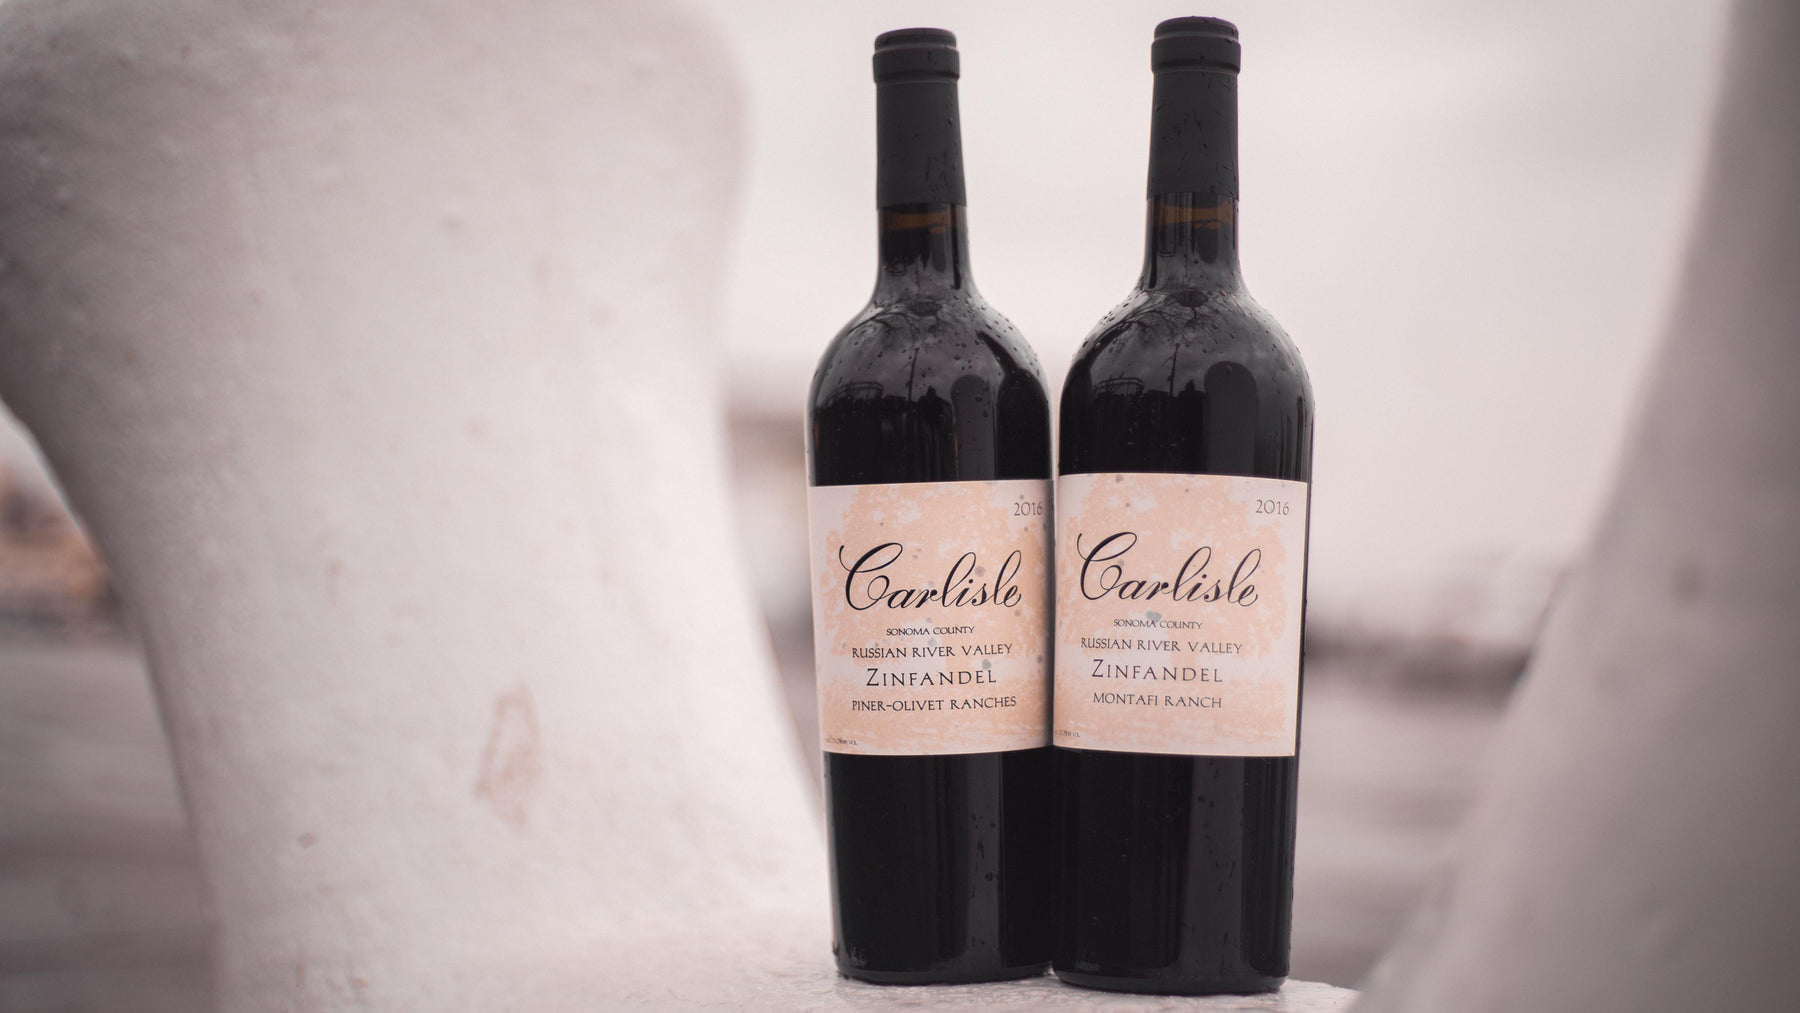 Meet the Winemaker - Mike Officer of Carlisle Winery - Wednesday, February 13th | 5-7pm